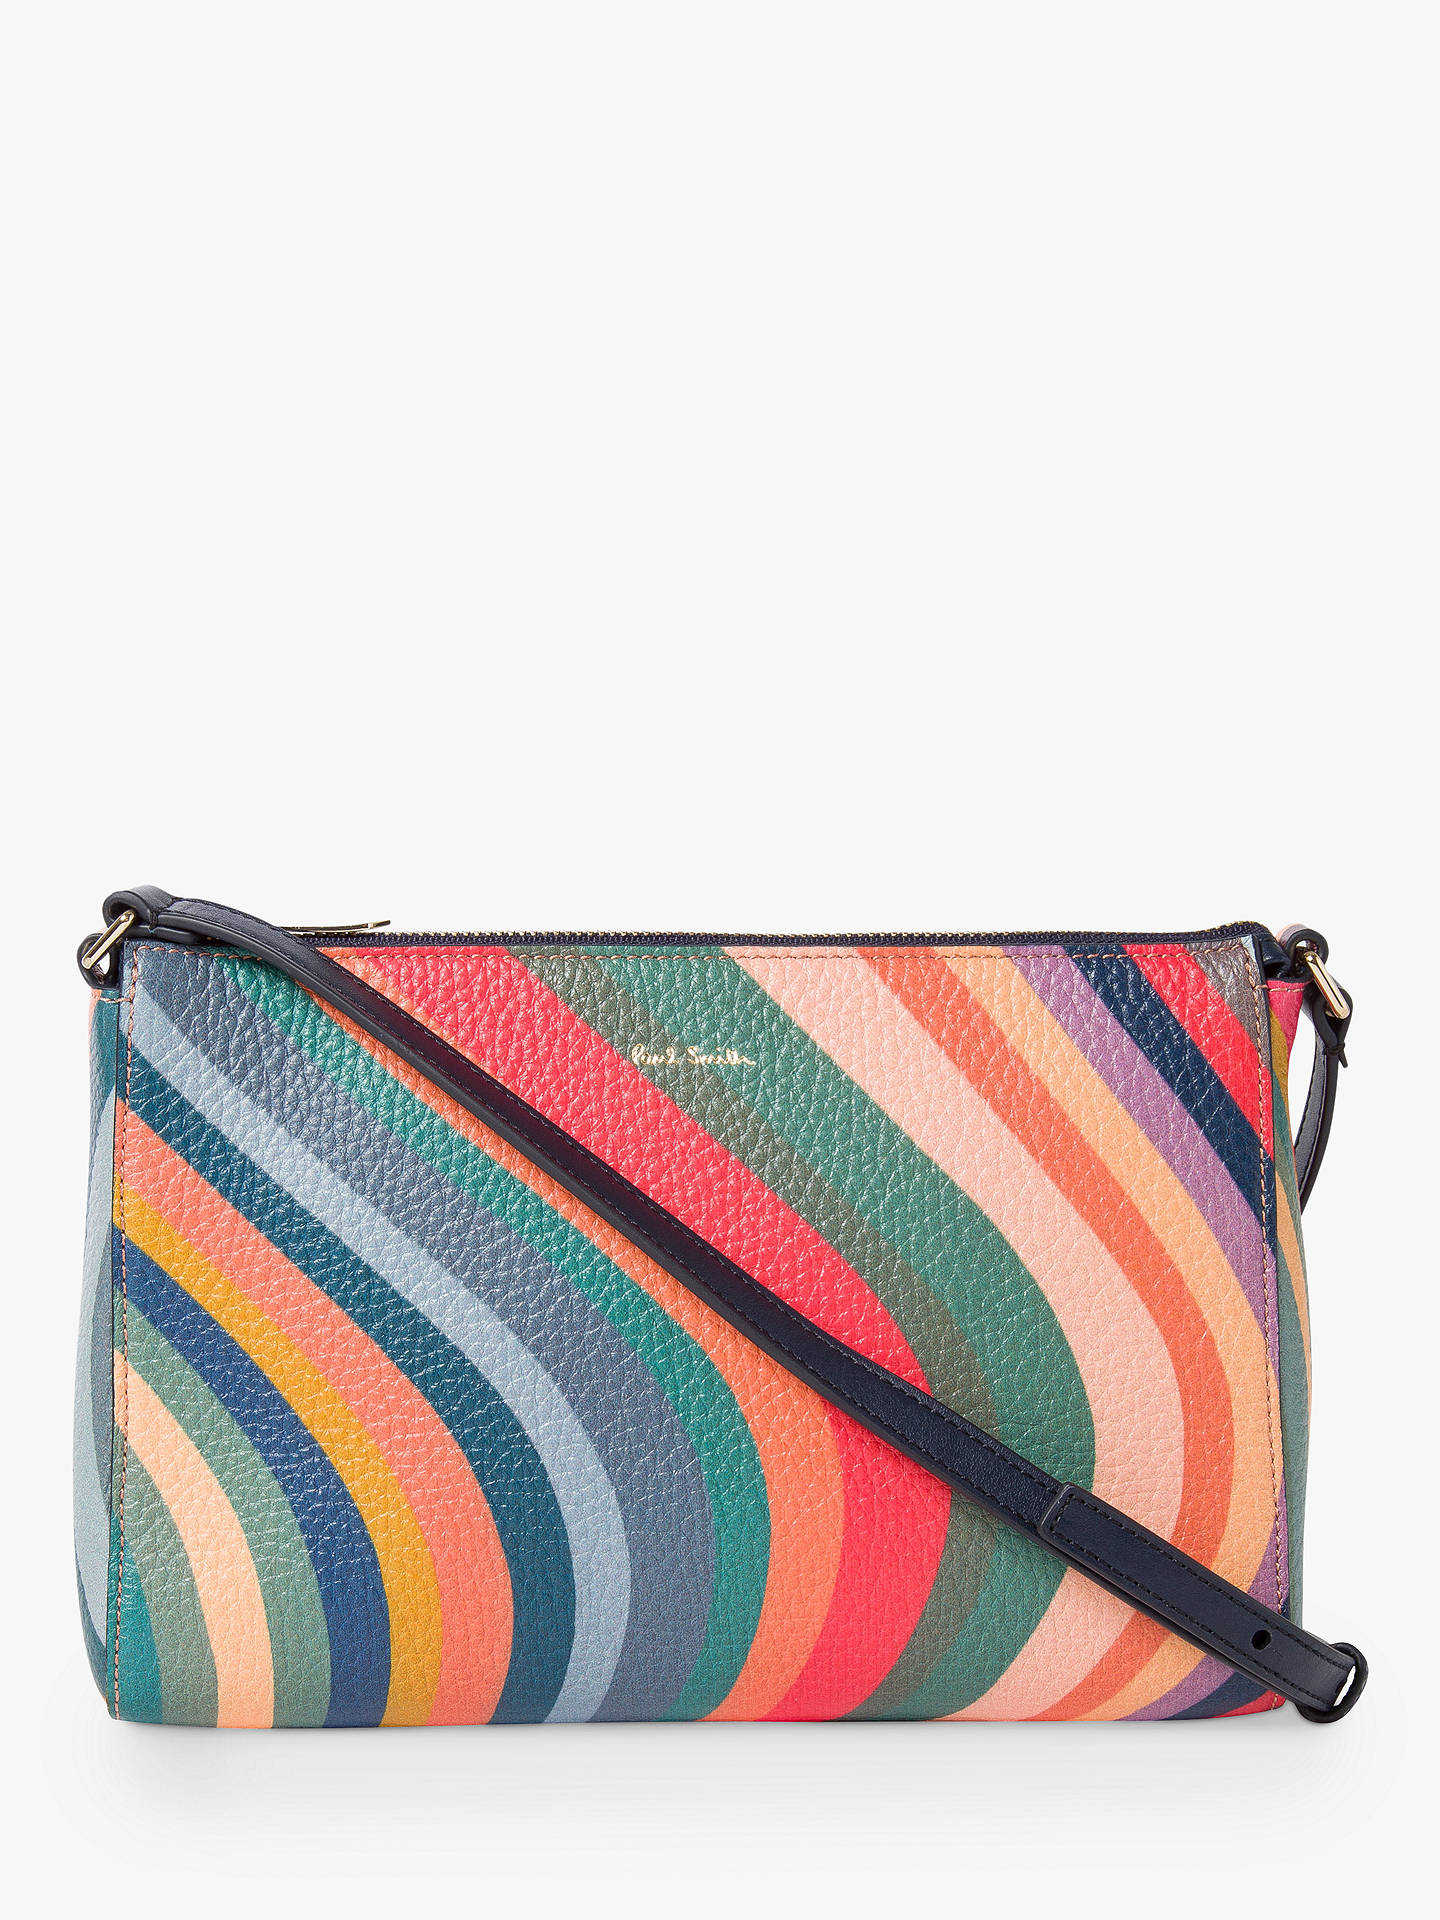 181634375b Buy Paul Smith Leather Top Zip Cross Body Bag